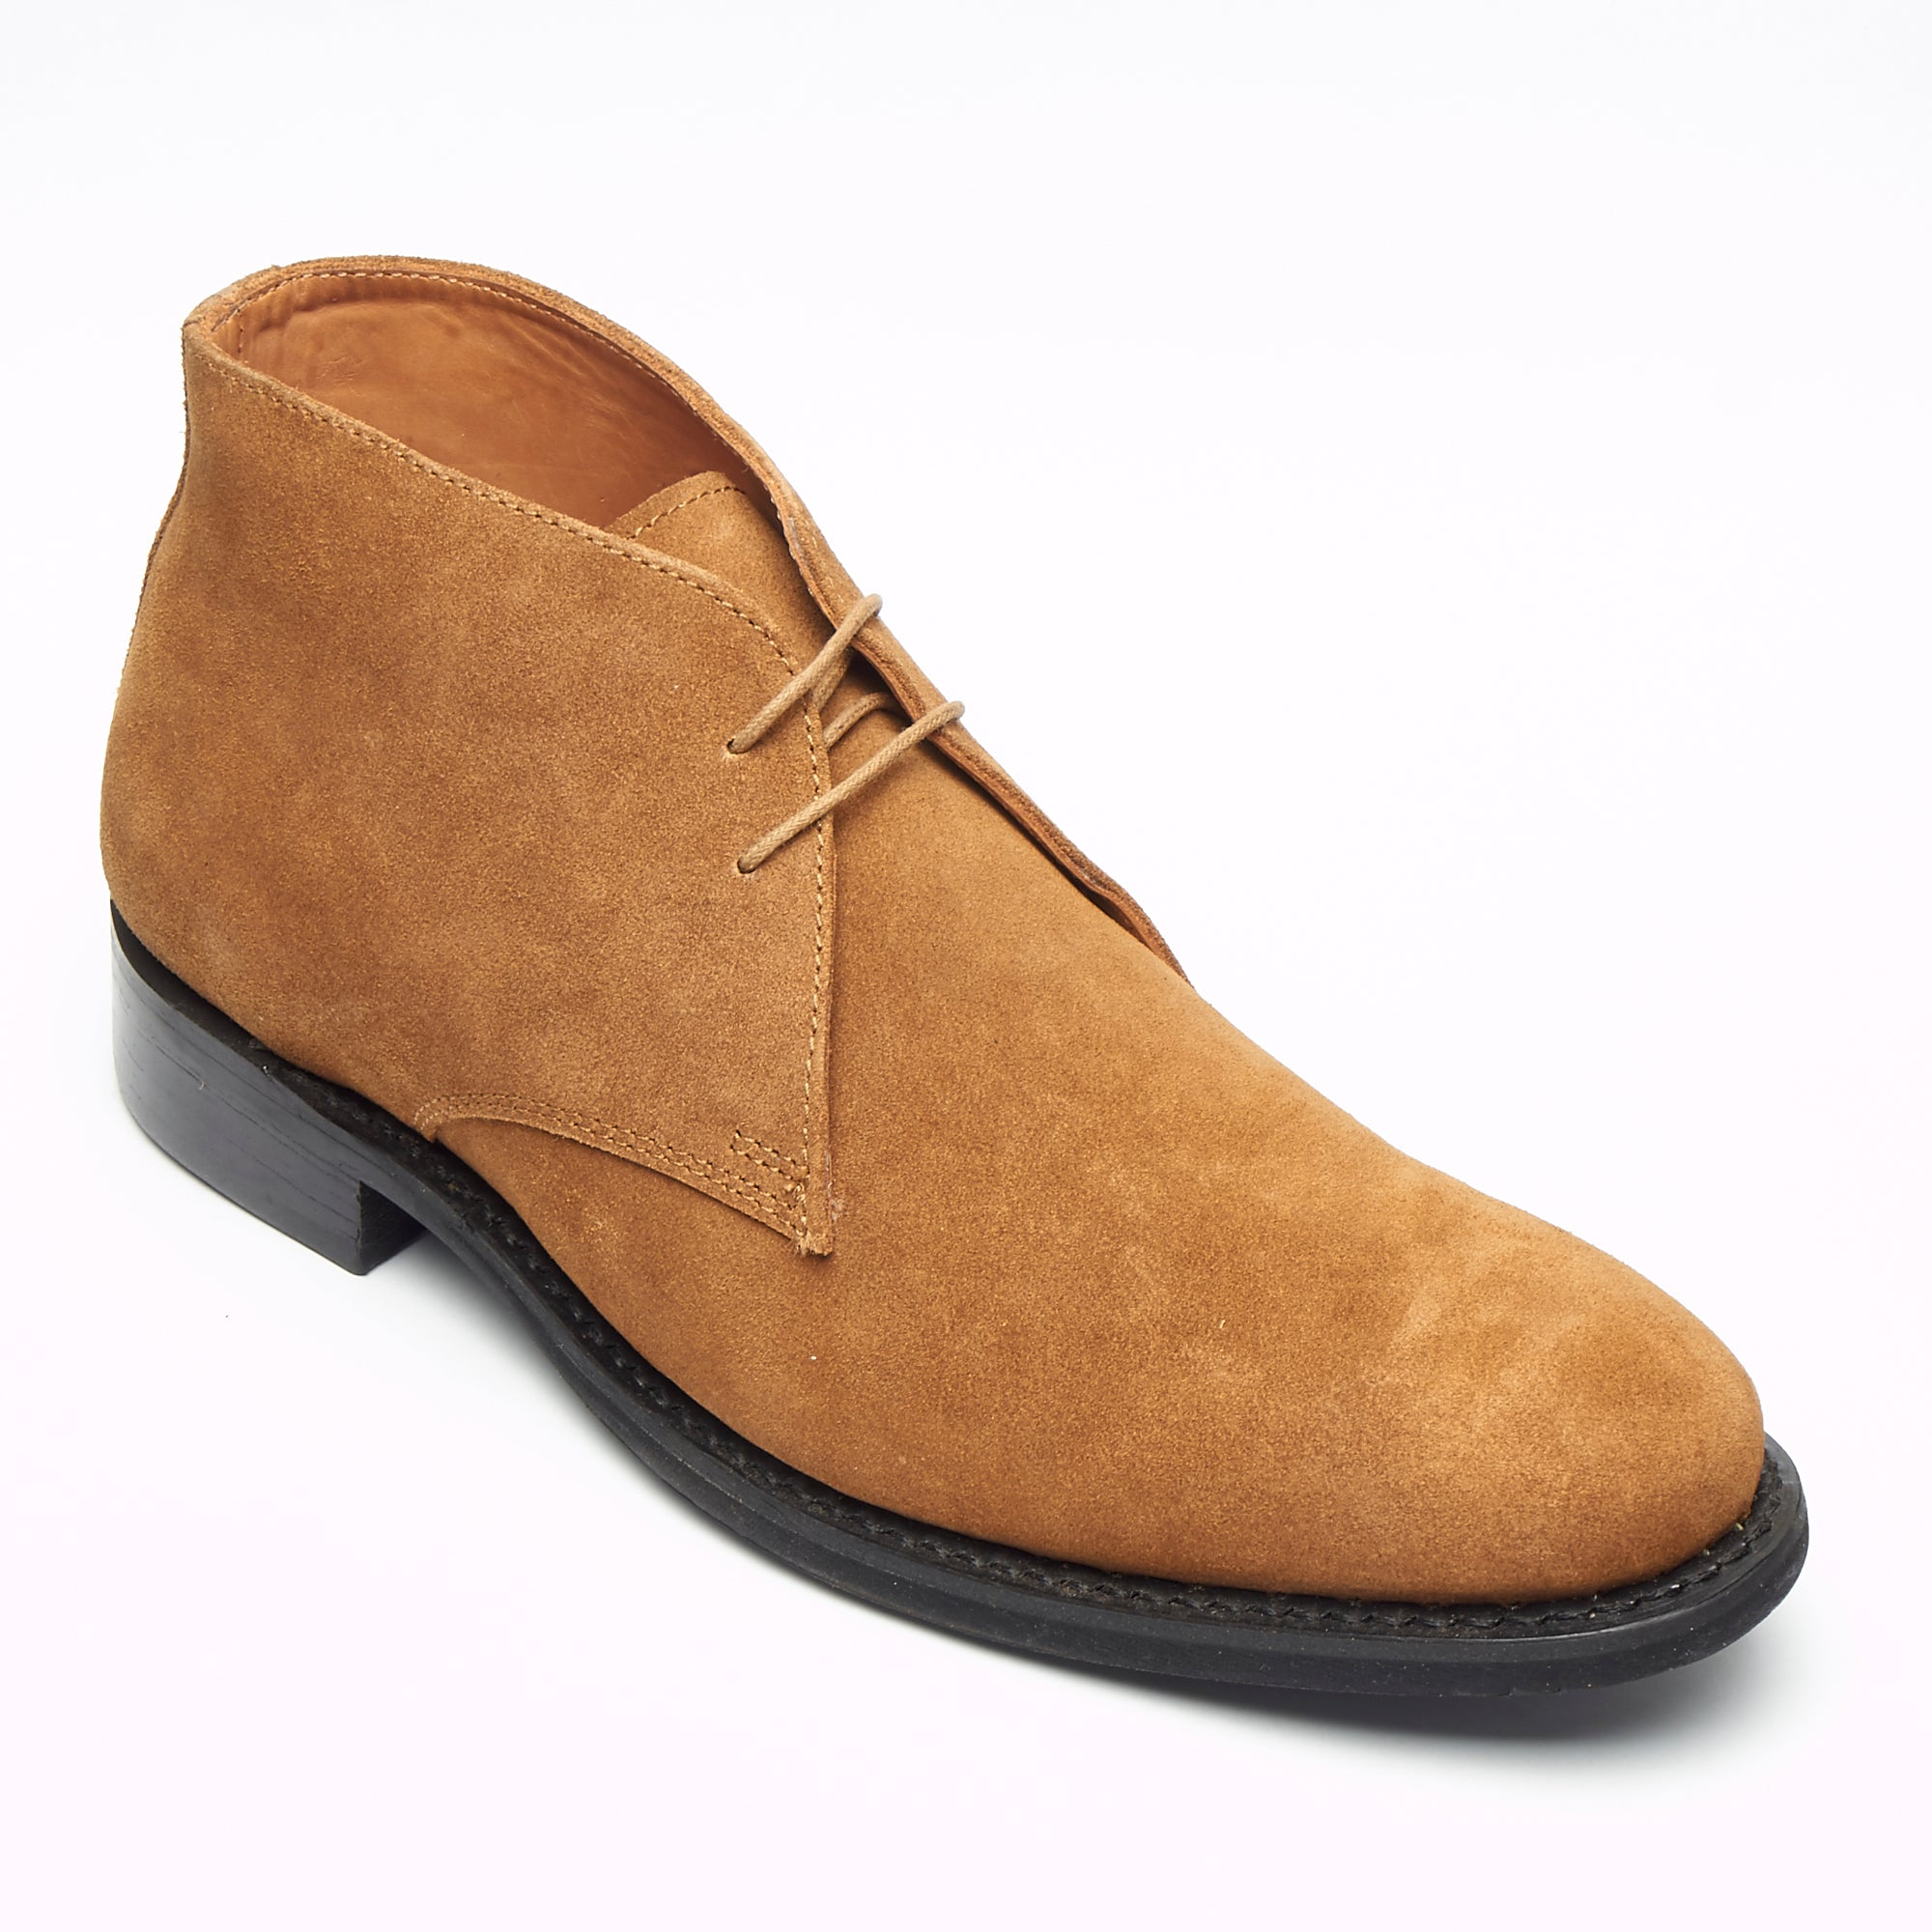 Mens Goodyear Welted Suede Lace Up Ankle Boots - 35515 Tan